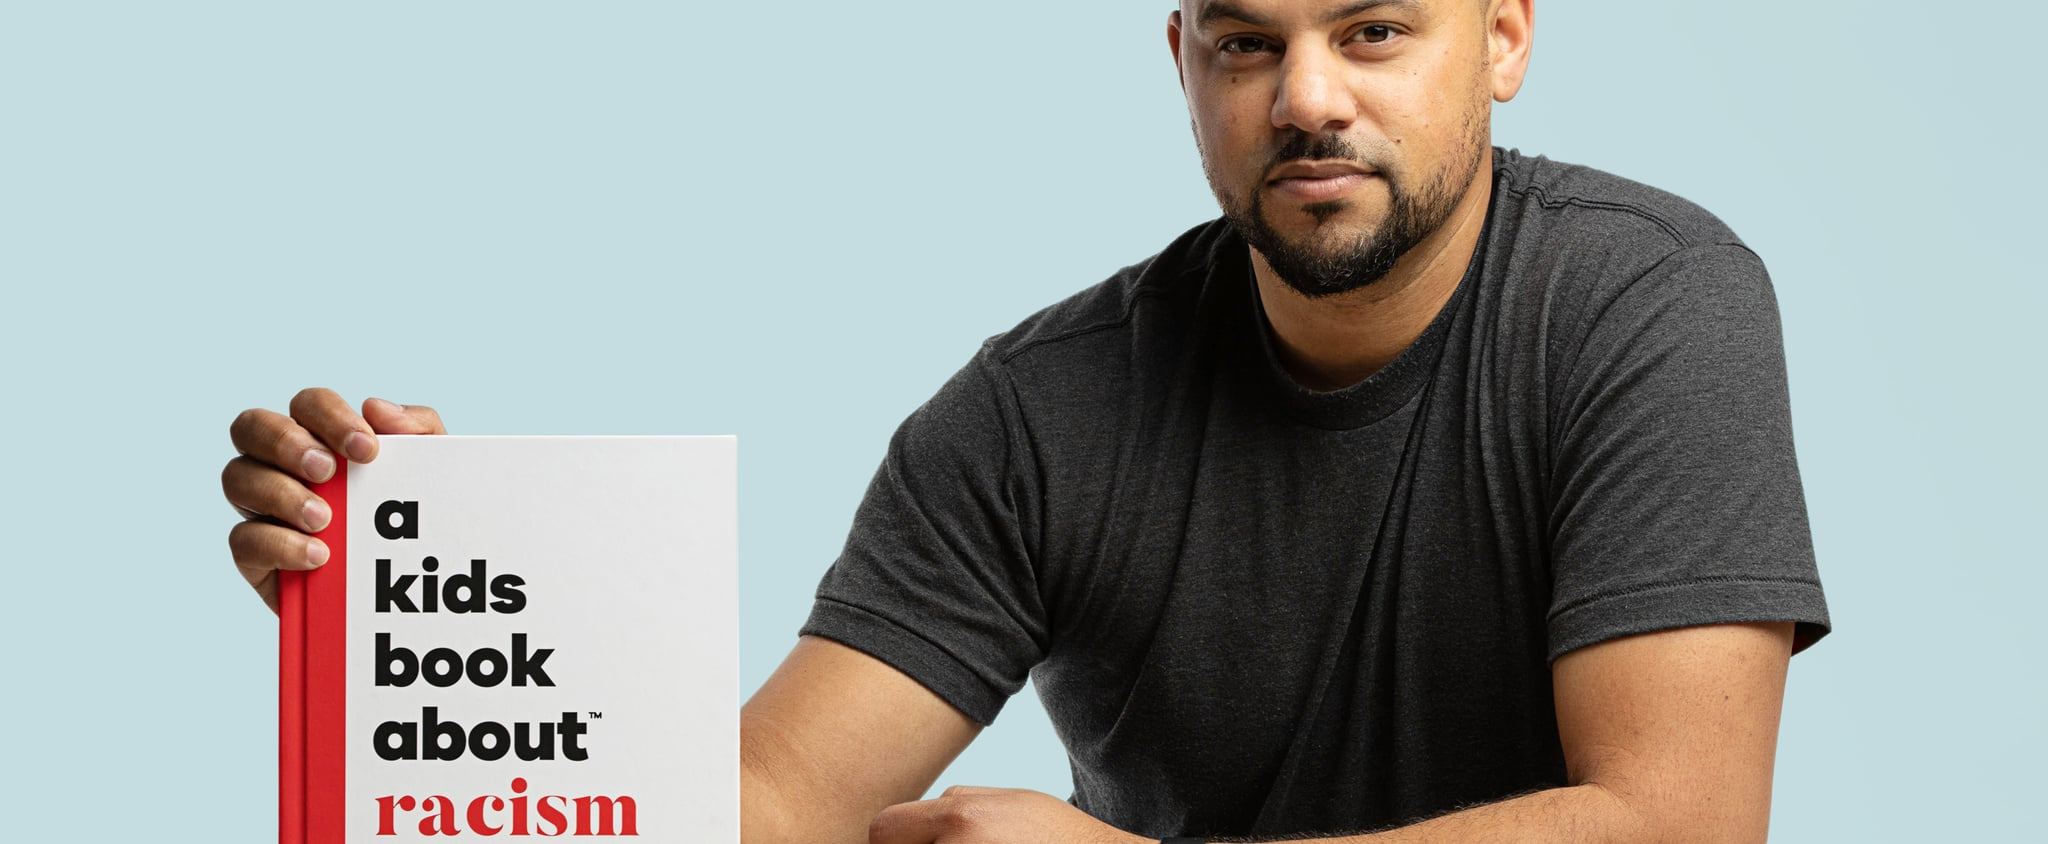 A Kids Book About Racism Interview With Author Jelani Memory